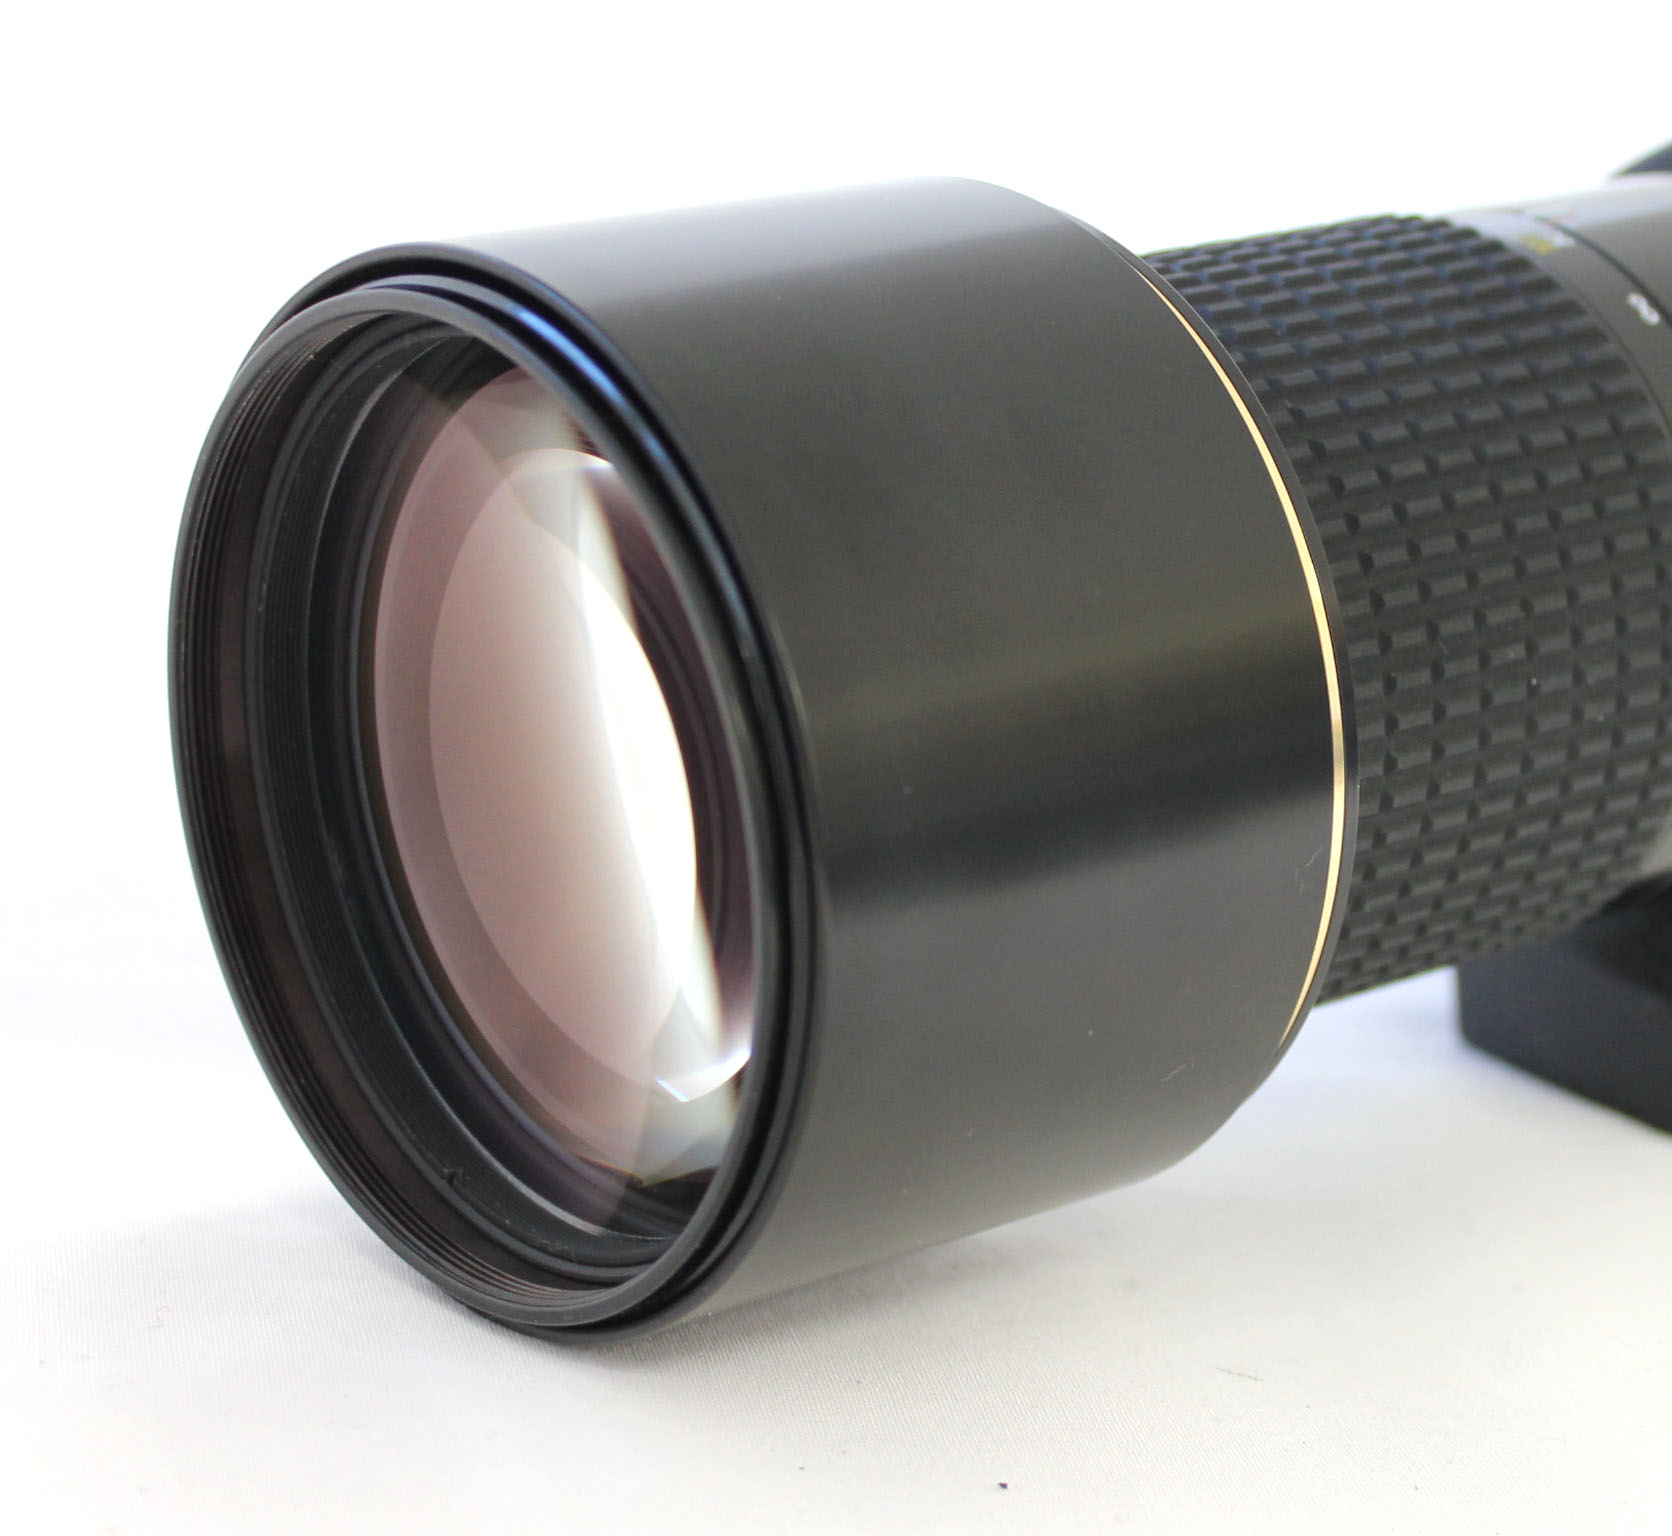 Nikon Ai Nikkor ED IF 300mm F/4.5 MF Telephoto Lens F Mount from Japan Photo 2